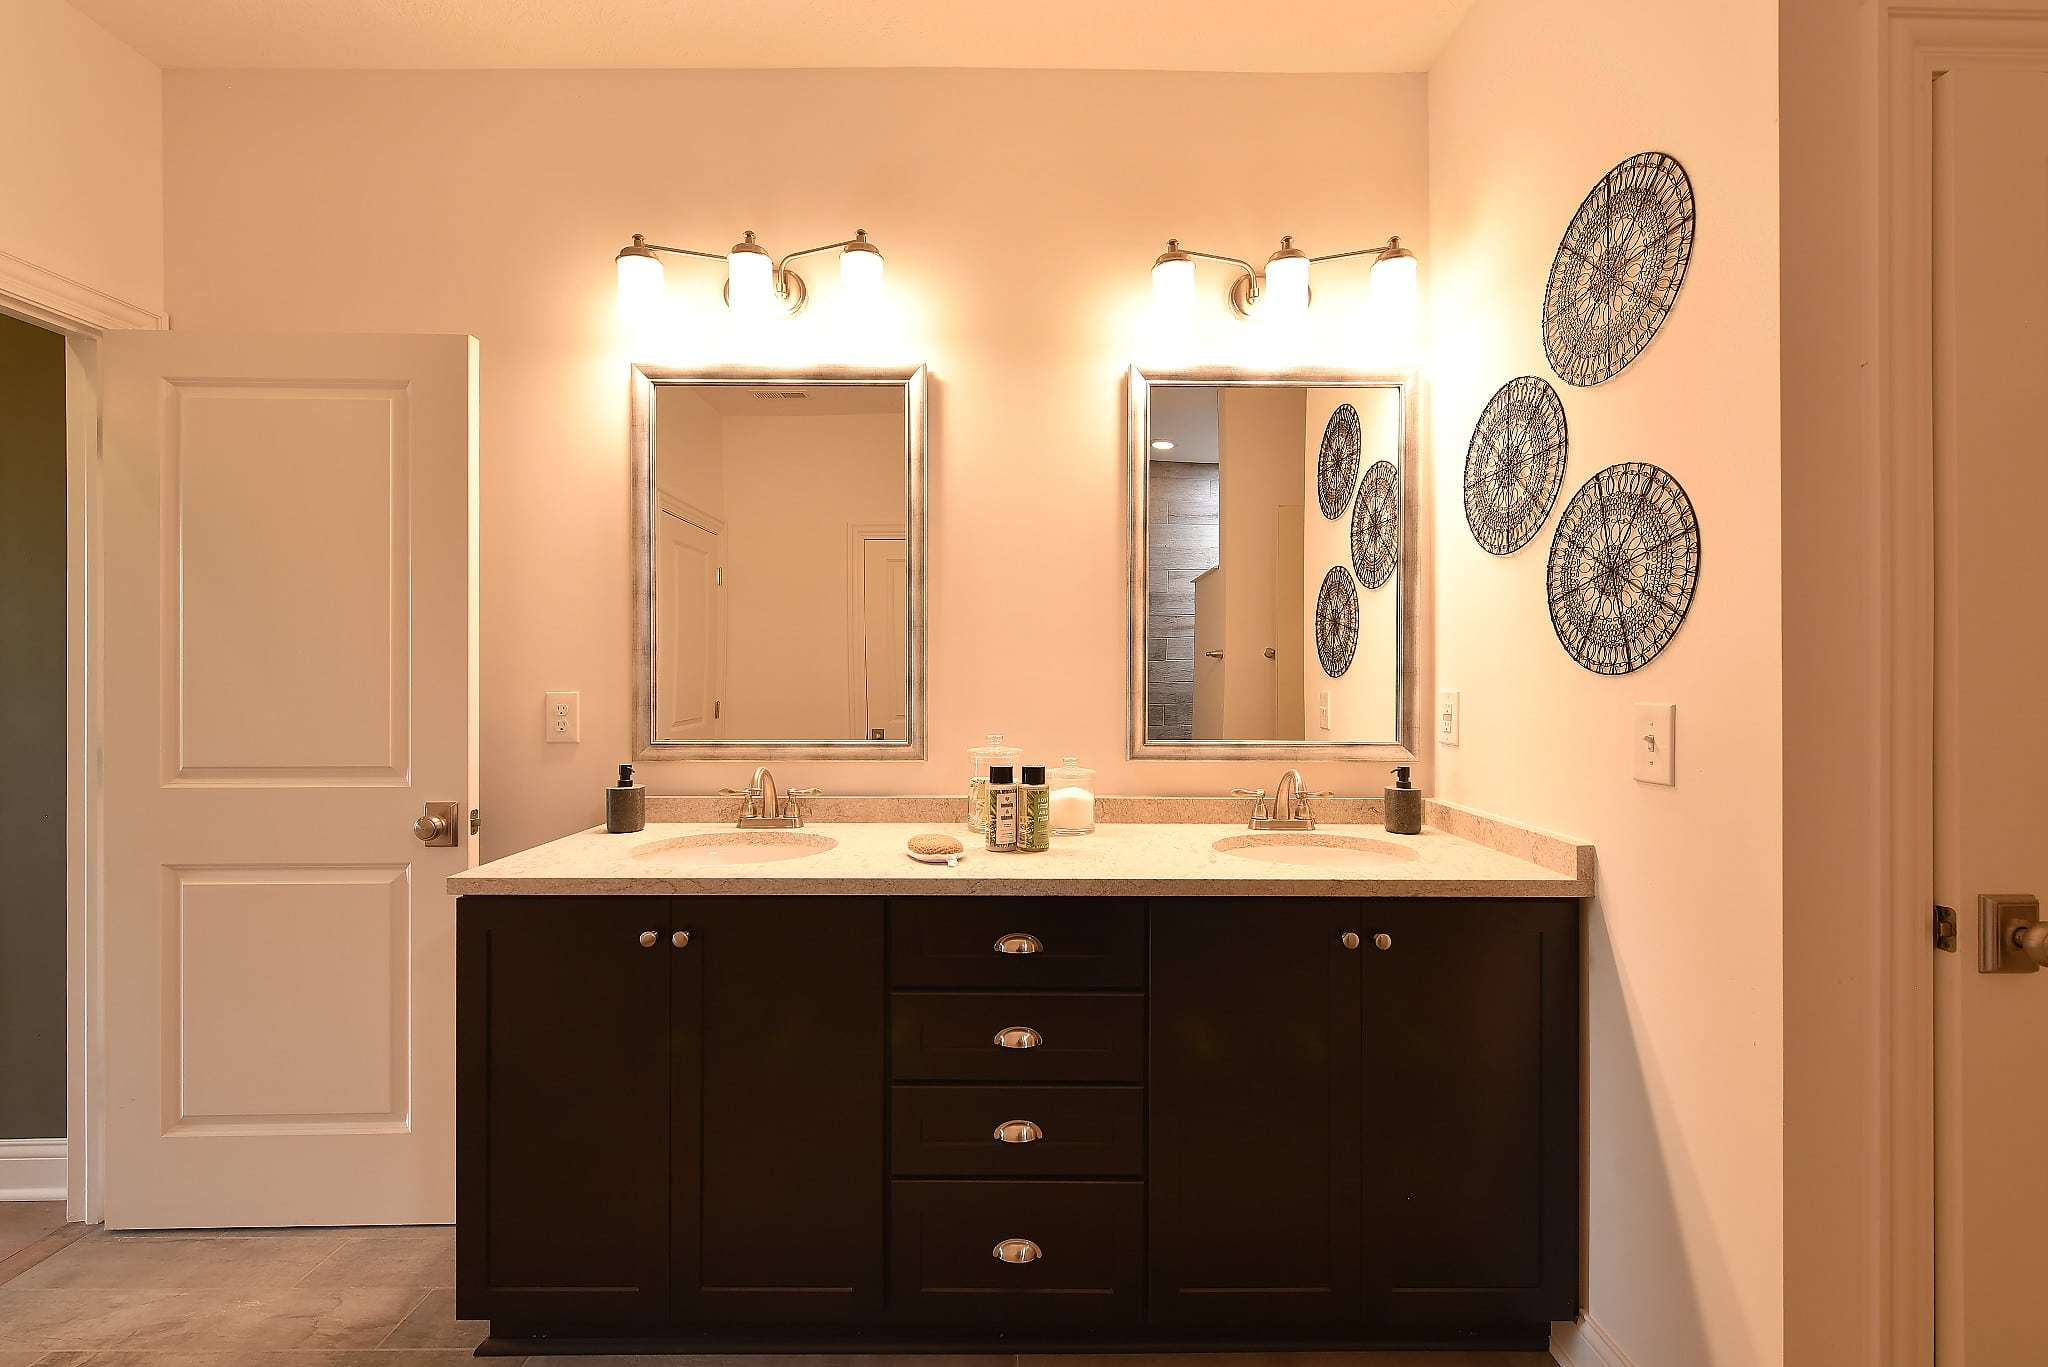 Bathroom featured in the Torino By Epcon Communities in Columbus, OH